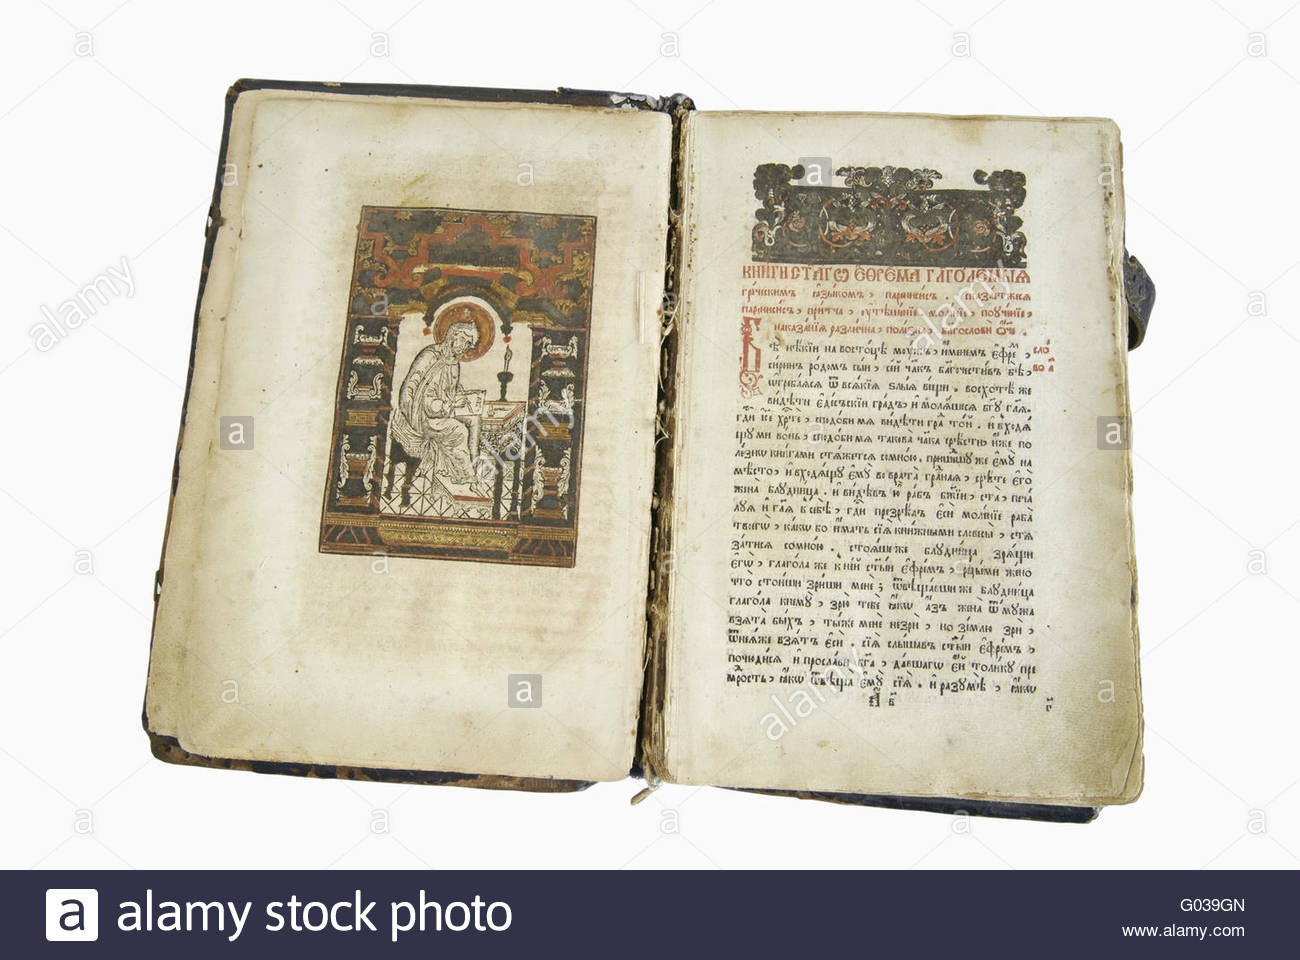 The ancient book written in old Slavic language - Stock Image